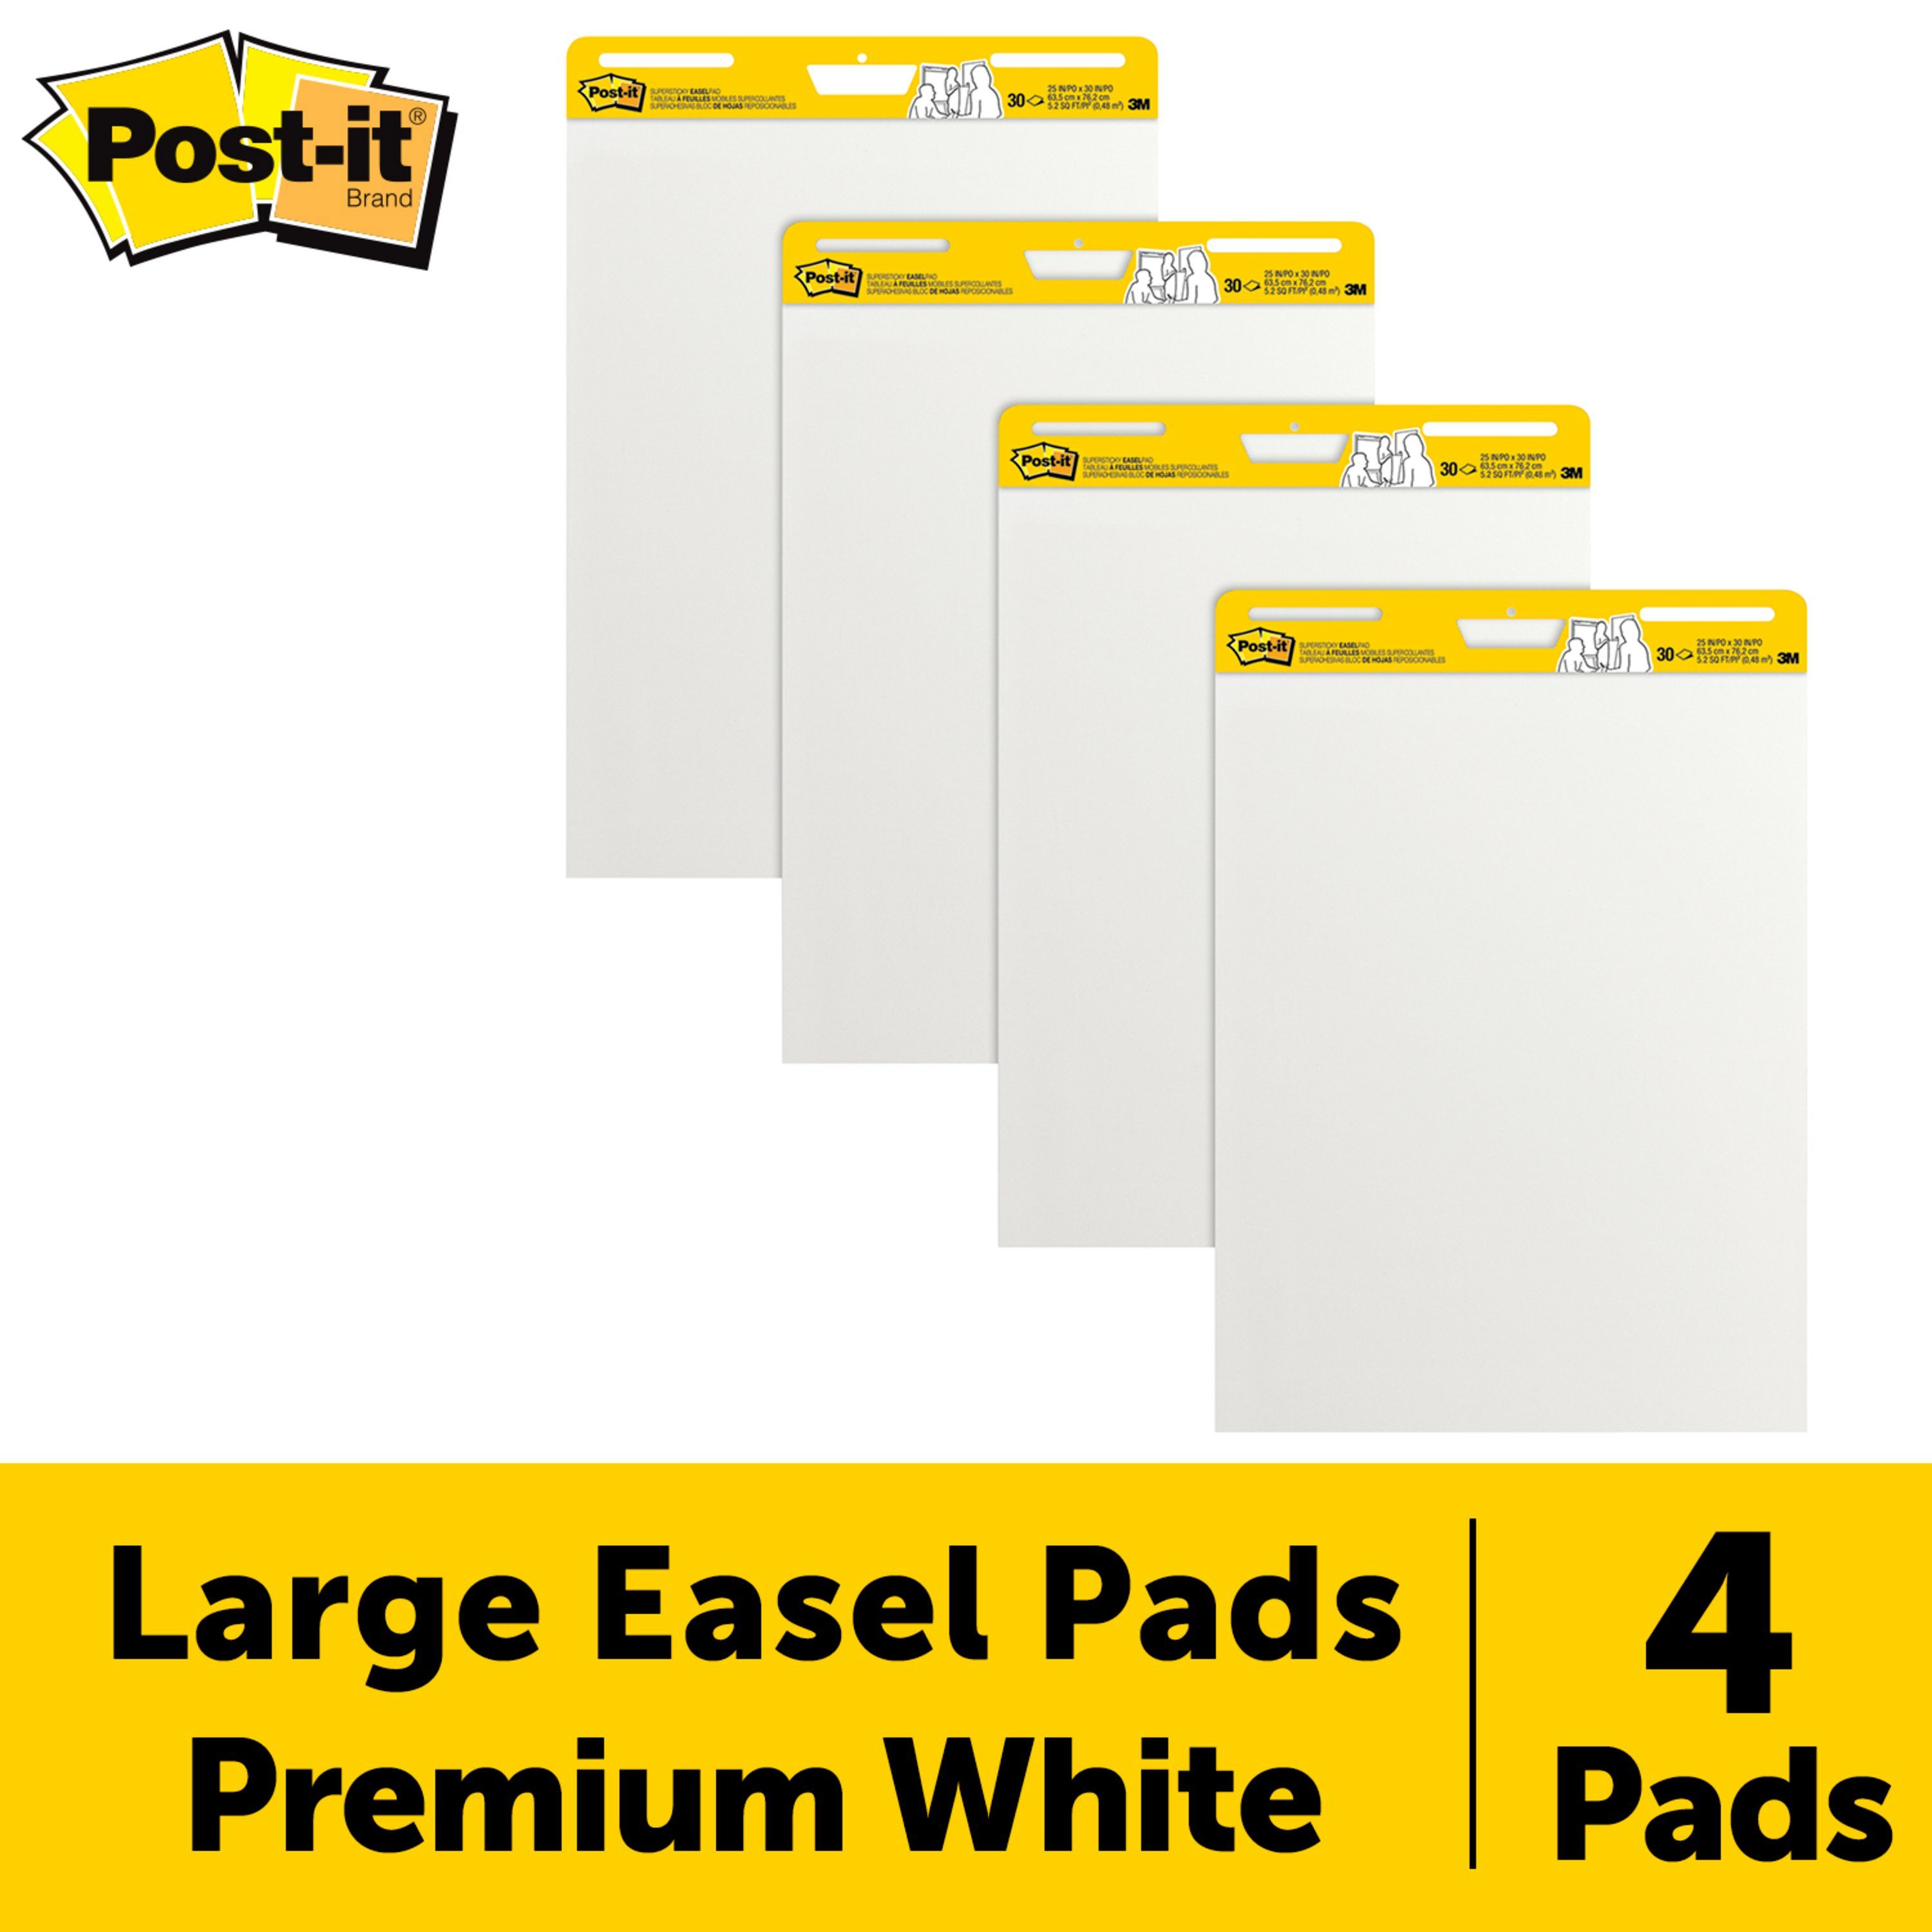 Super Sticking Power 30 Sheets//Pad Post-it Super Sticky Easel Pad 2 Pads 25 x 30 Inches Large White Premium Self Stick Flip Chart Paper 559